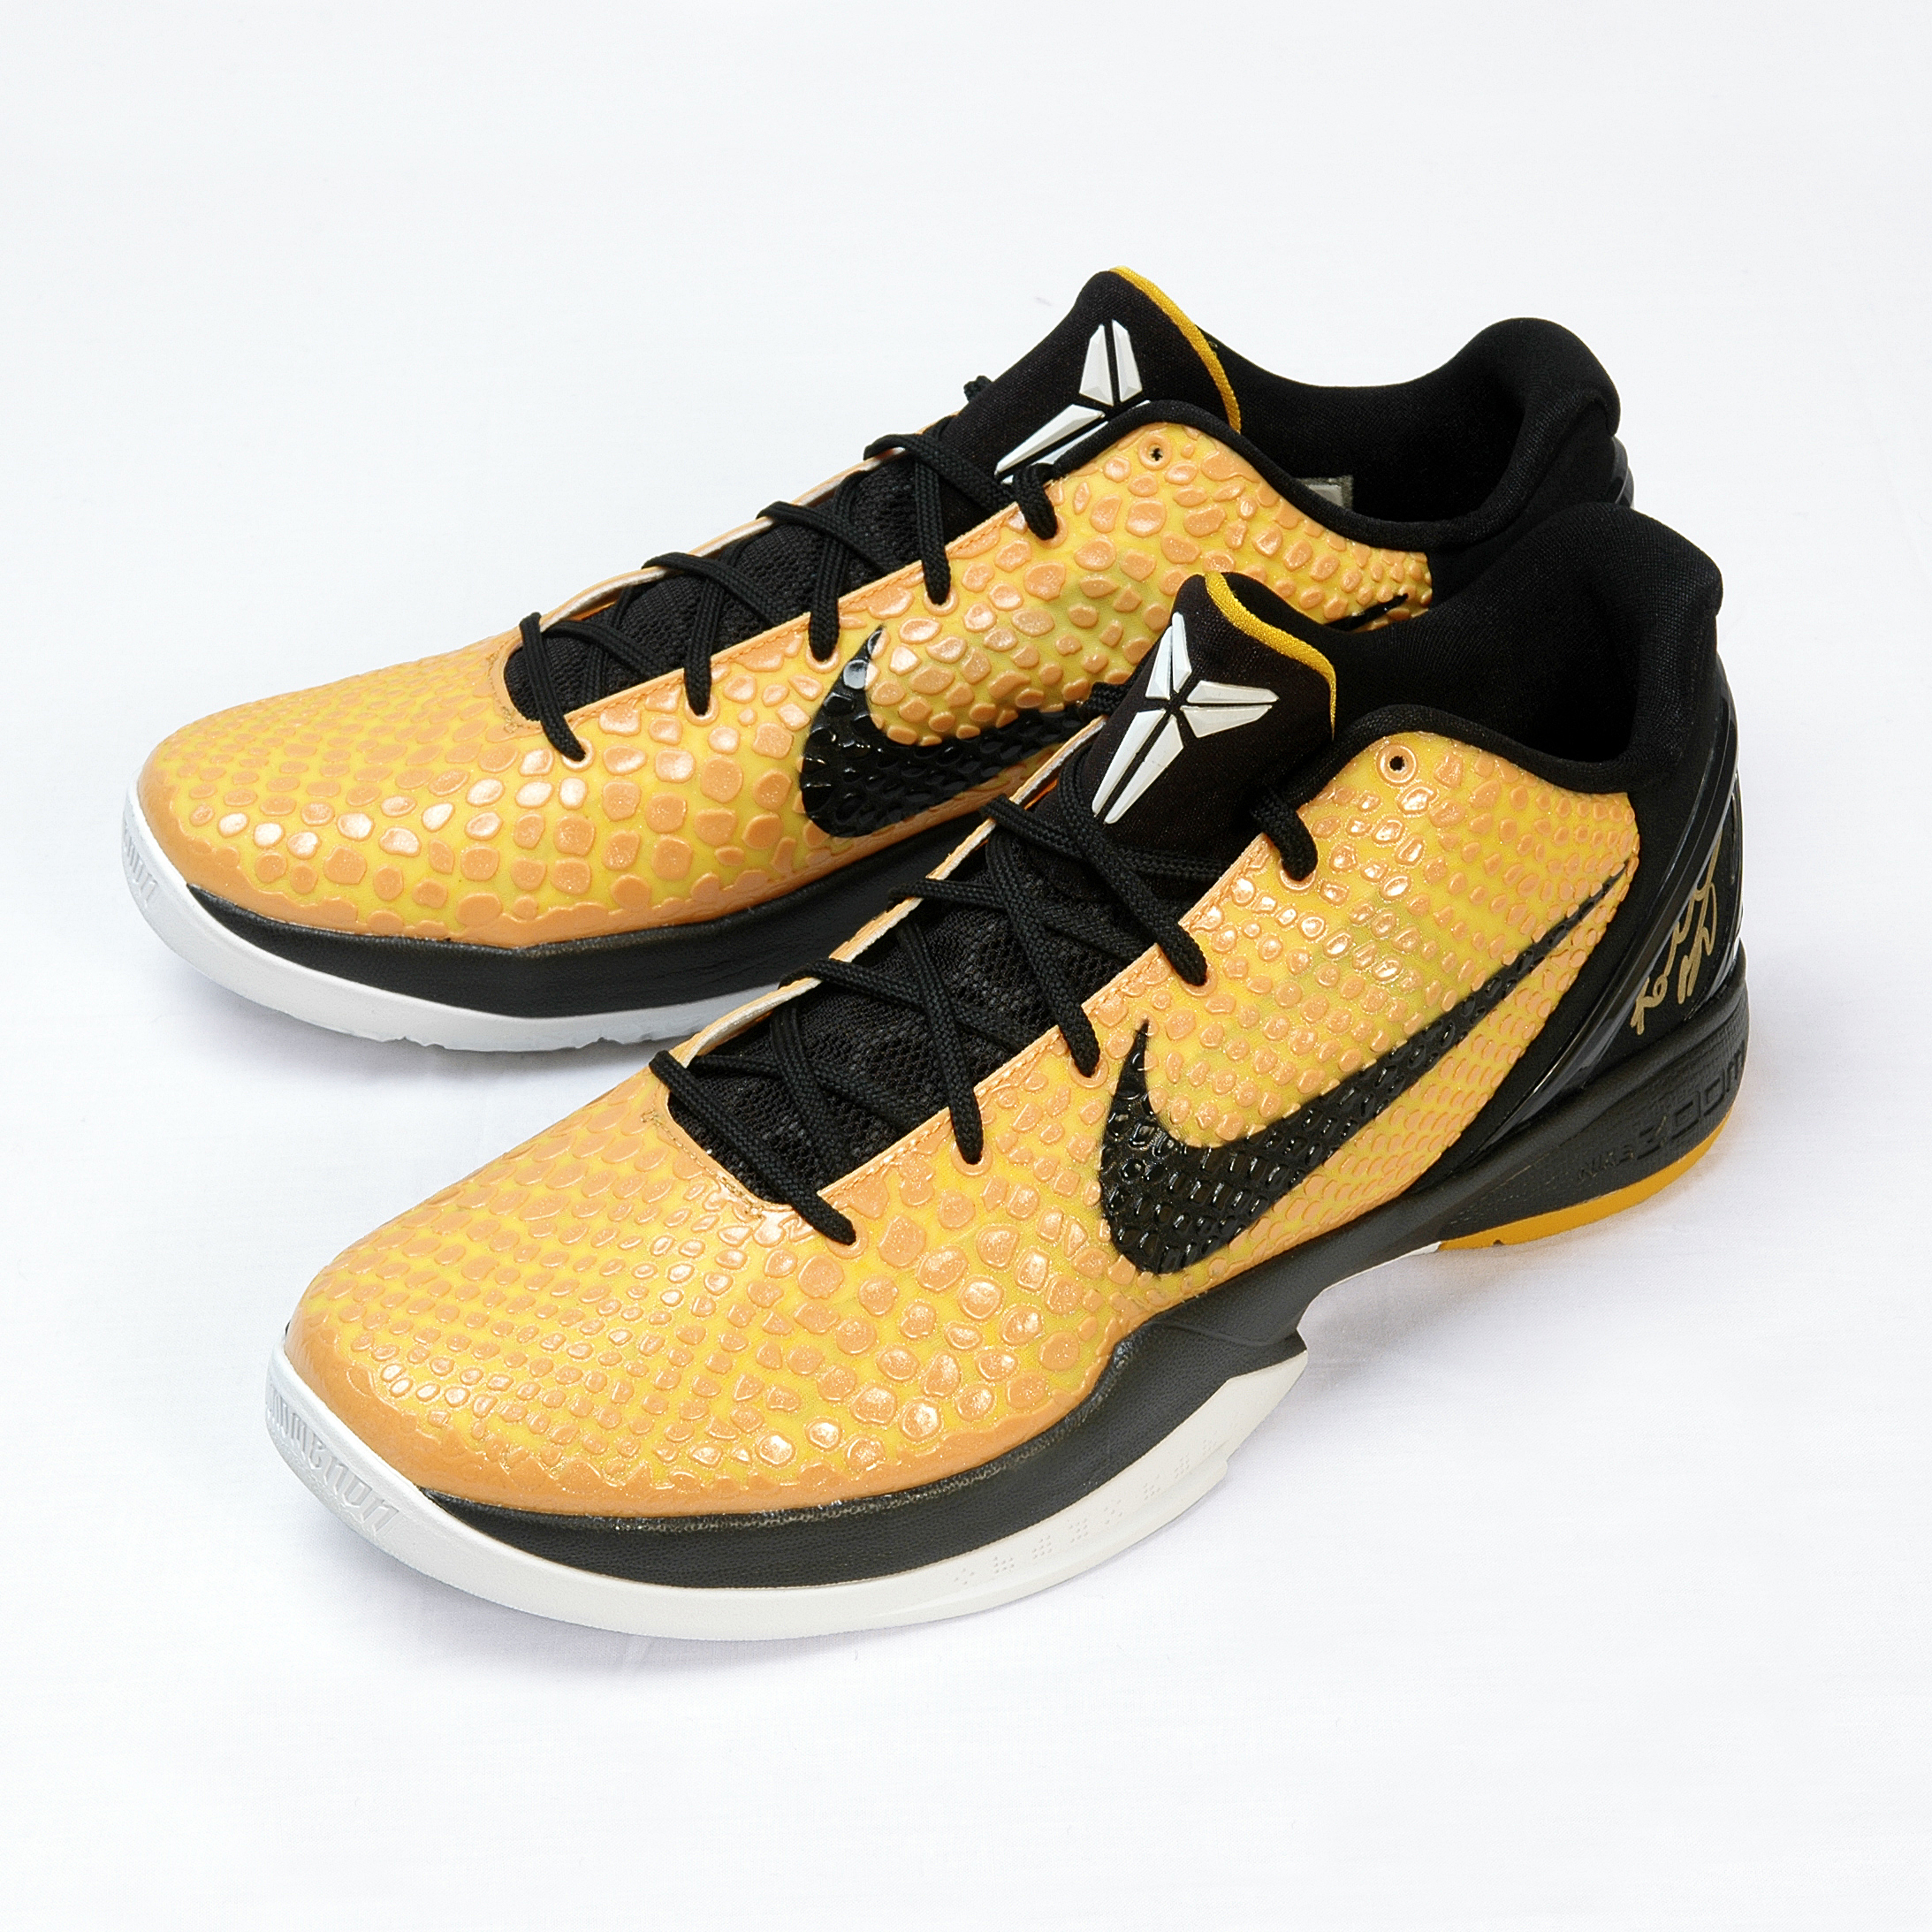 check out c7422 6054e Kobe and Nike continue to be on the forefront of shoe design and the  Lightbulb Del Sol is no different. This shoe possesses three different  shades of yellow ...